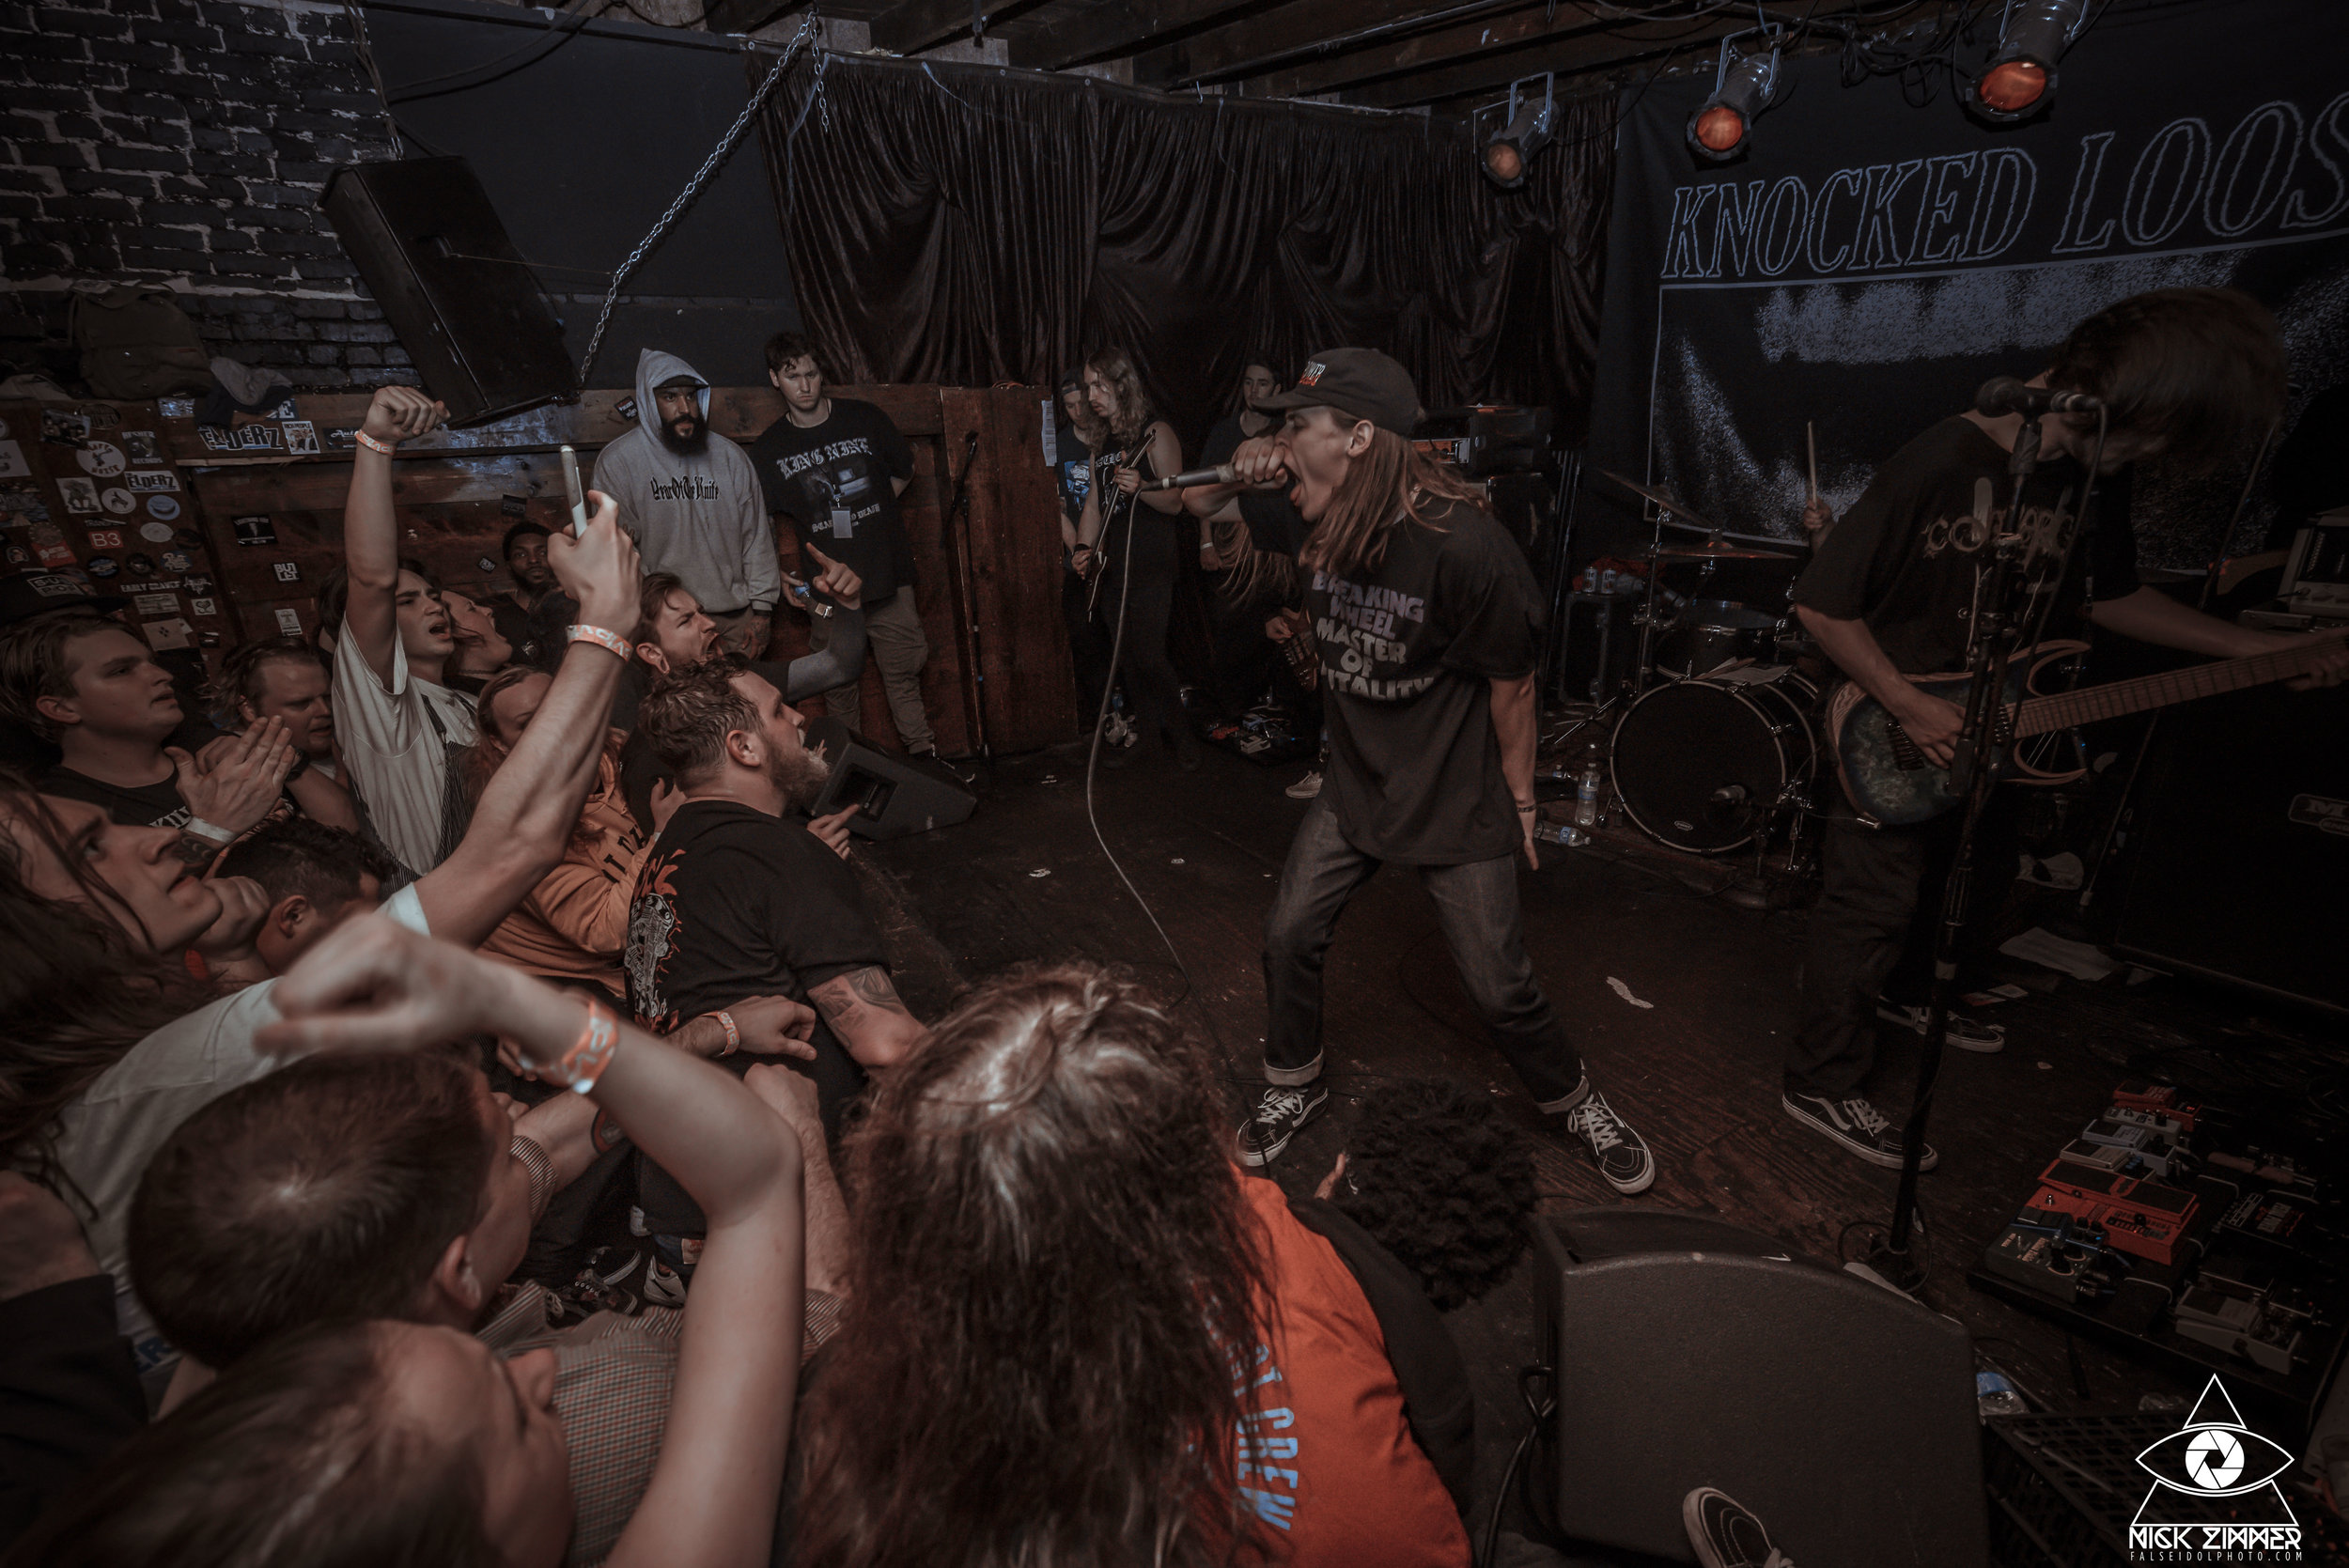 KnockedLoose.TheEnd.NickZimmer (5 of 24).jpg